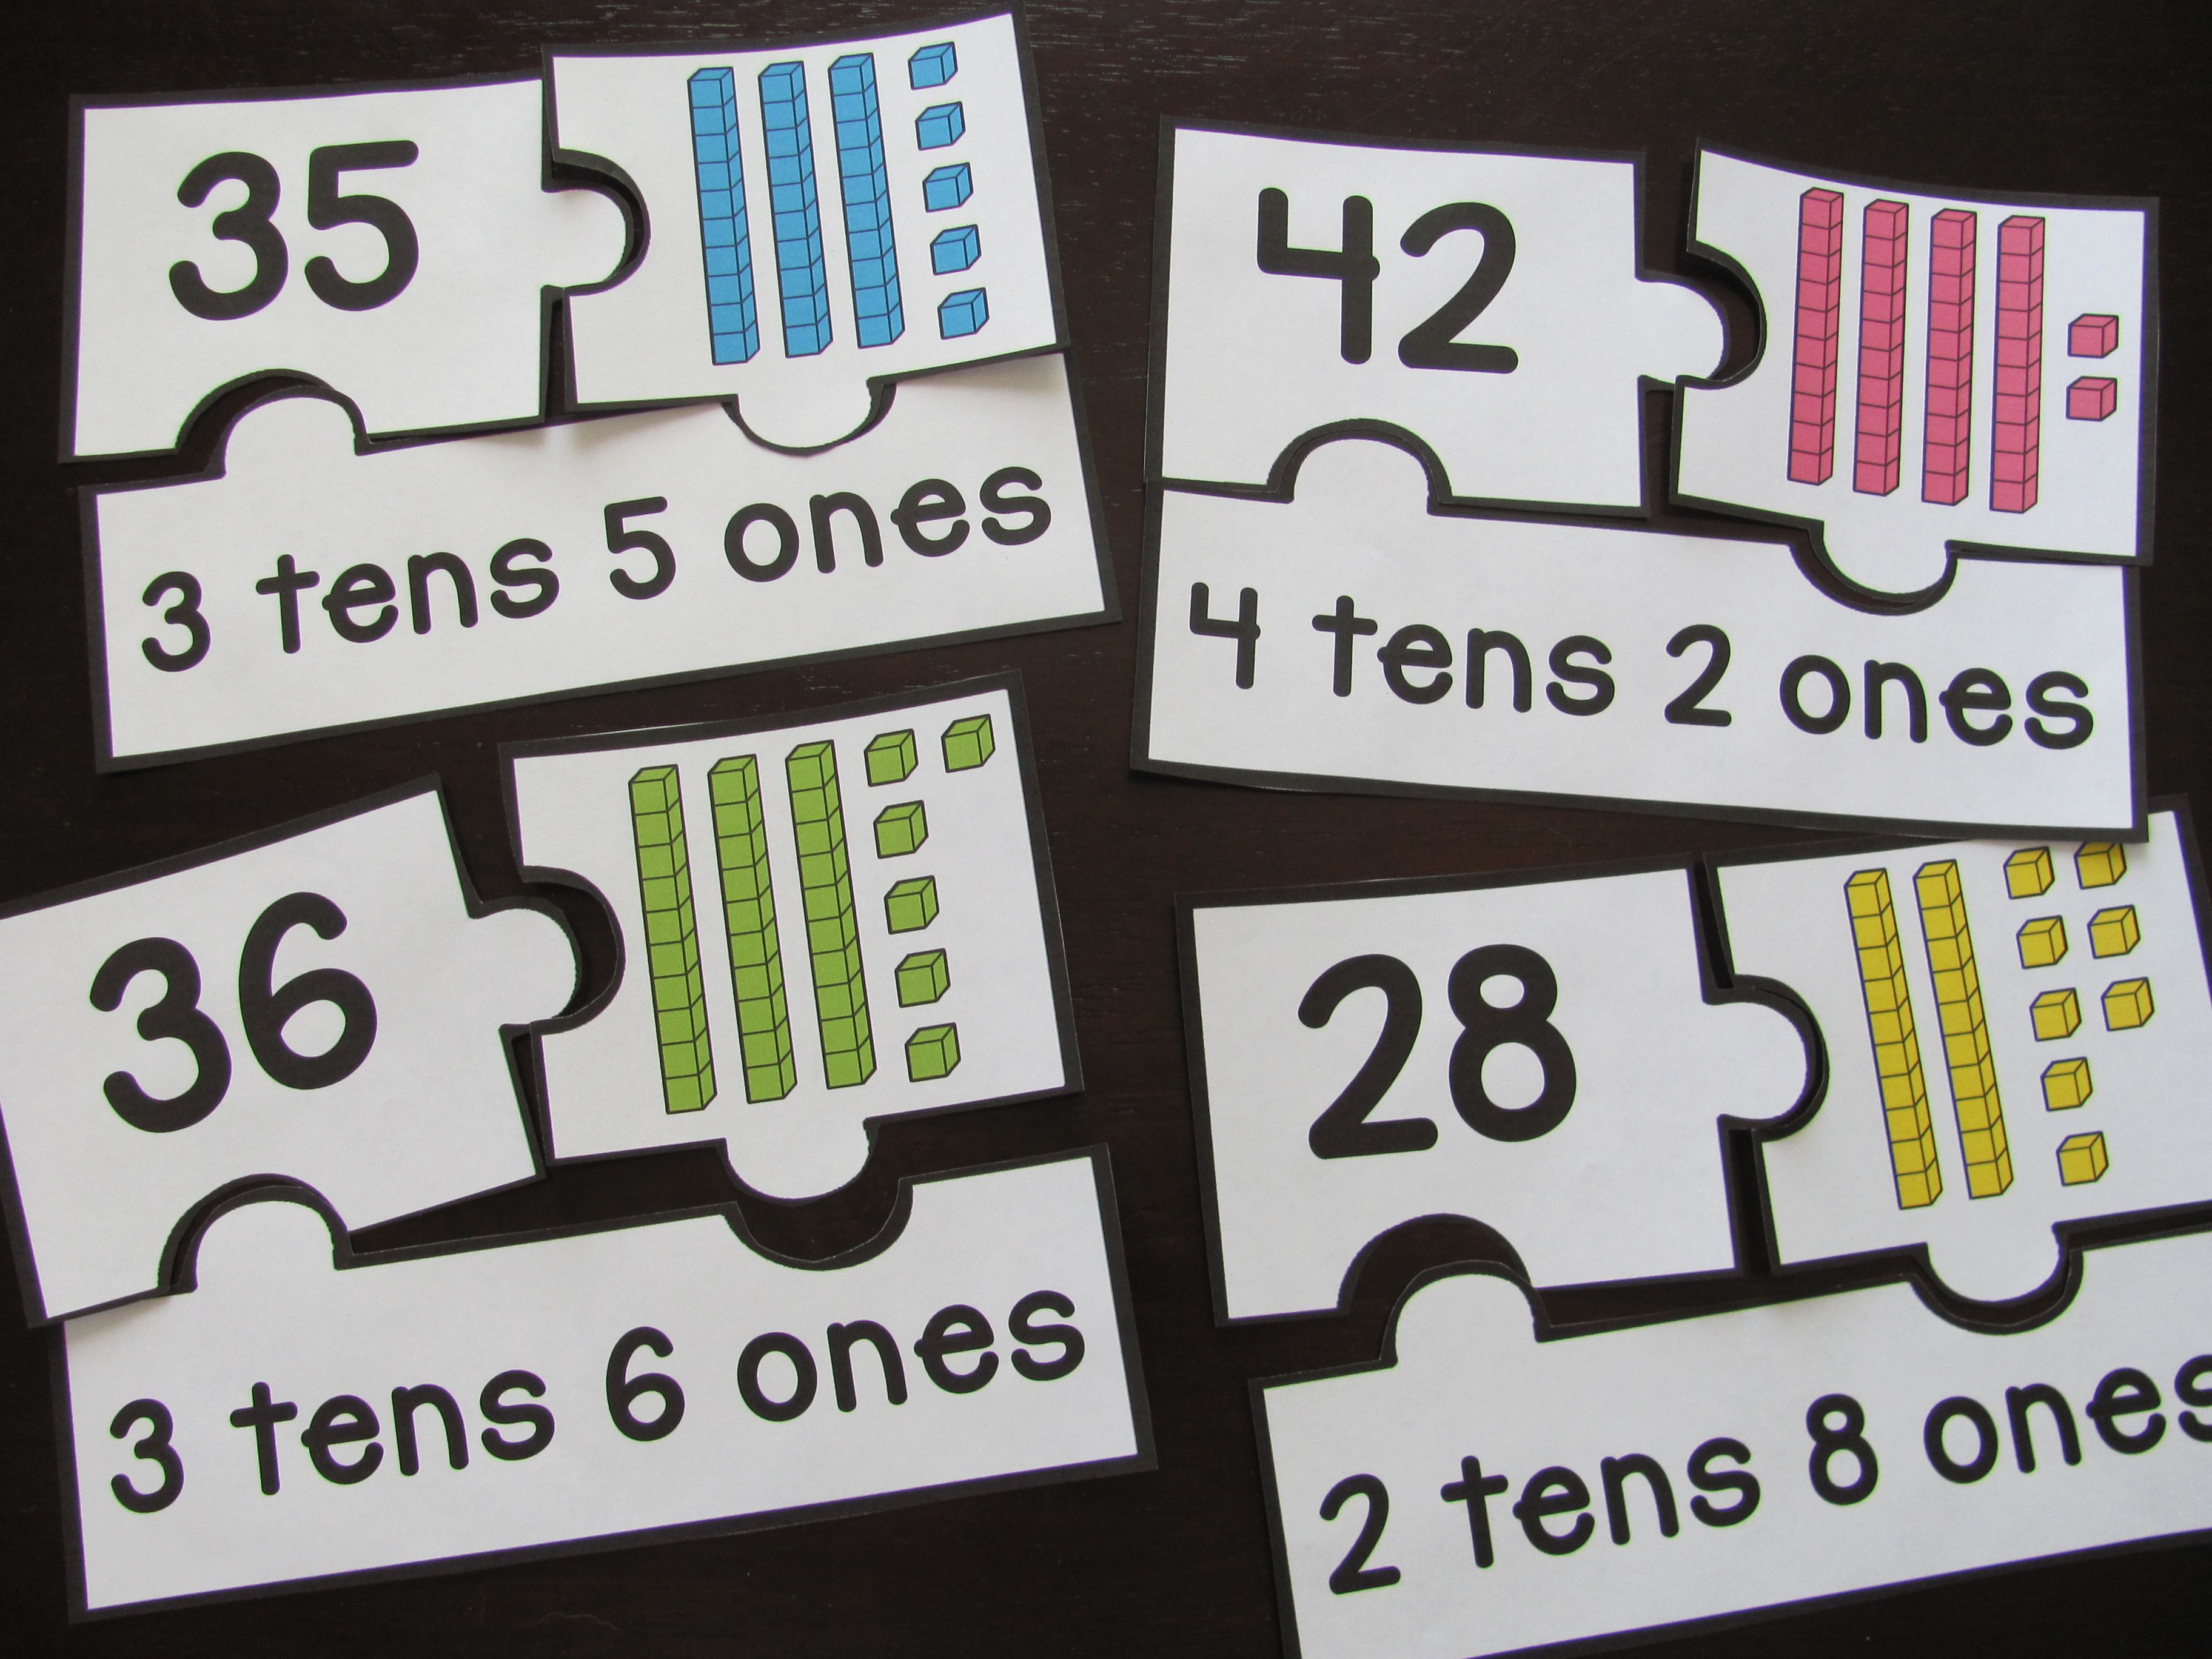 Place Value Puzzles I Don T Teach This But This Is A Great Idea For Review Or Even An